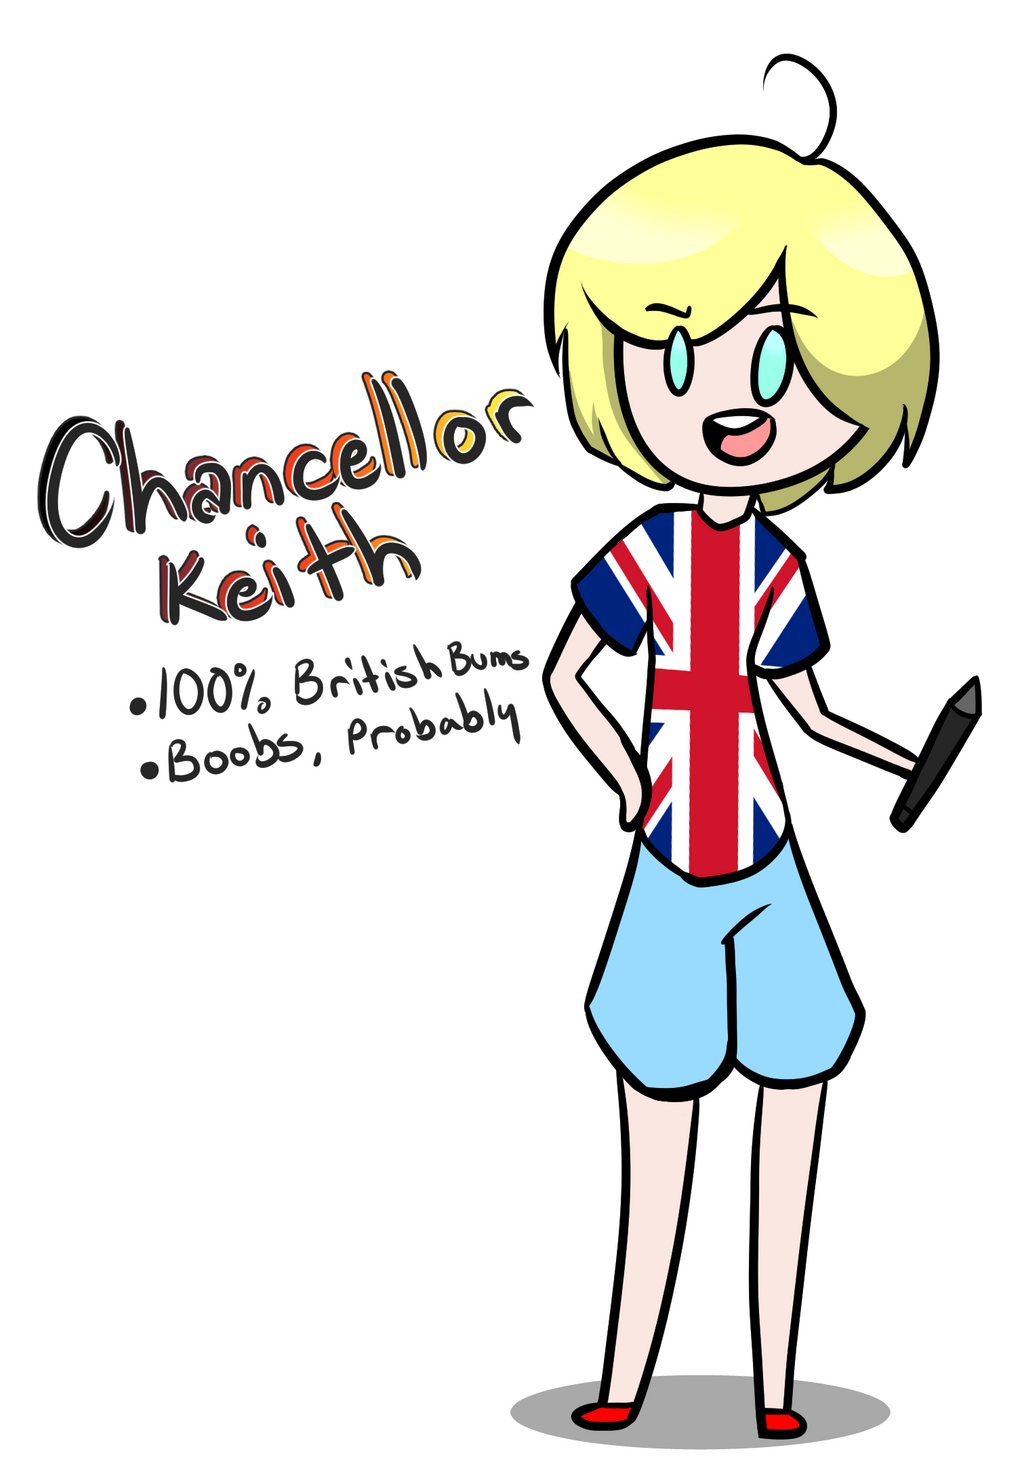 ChancellorKeith's Profile Picture